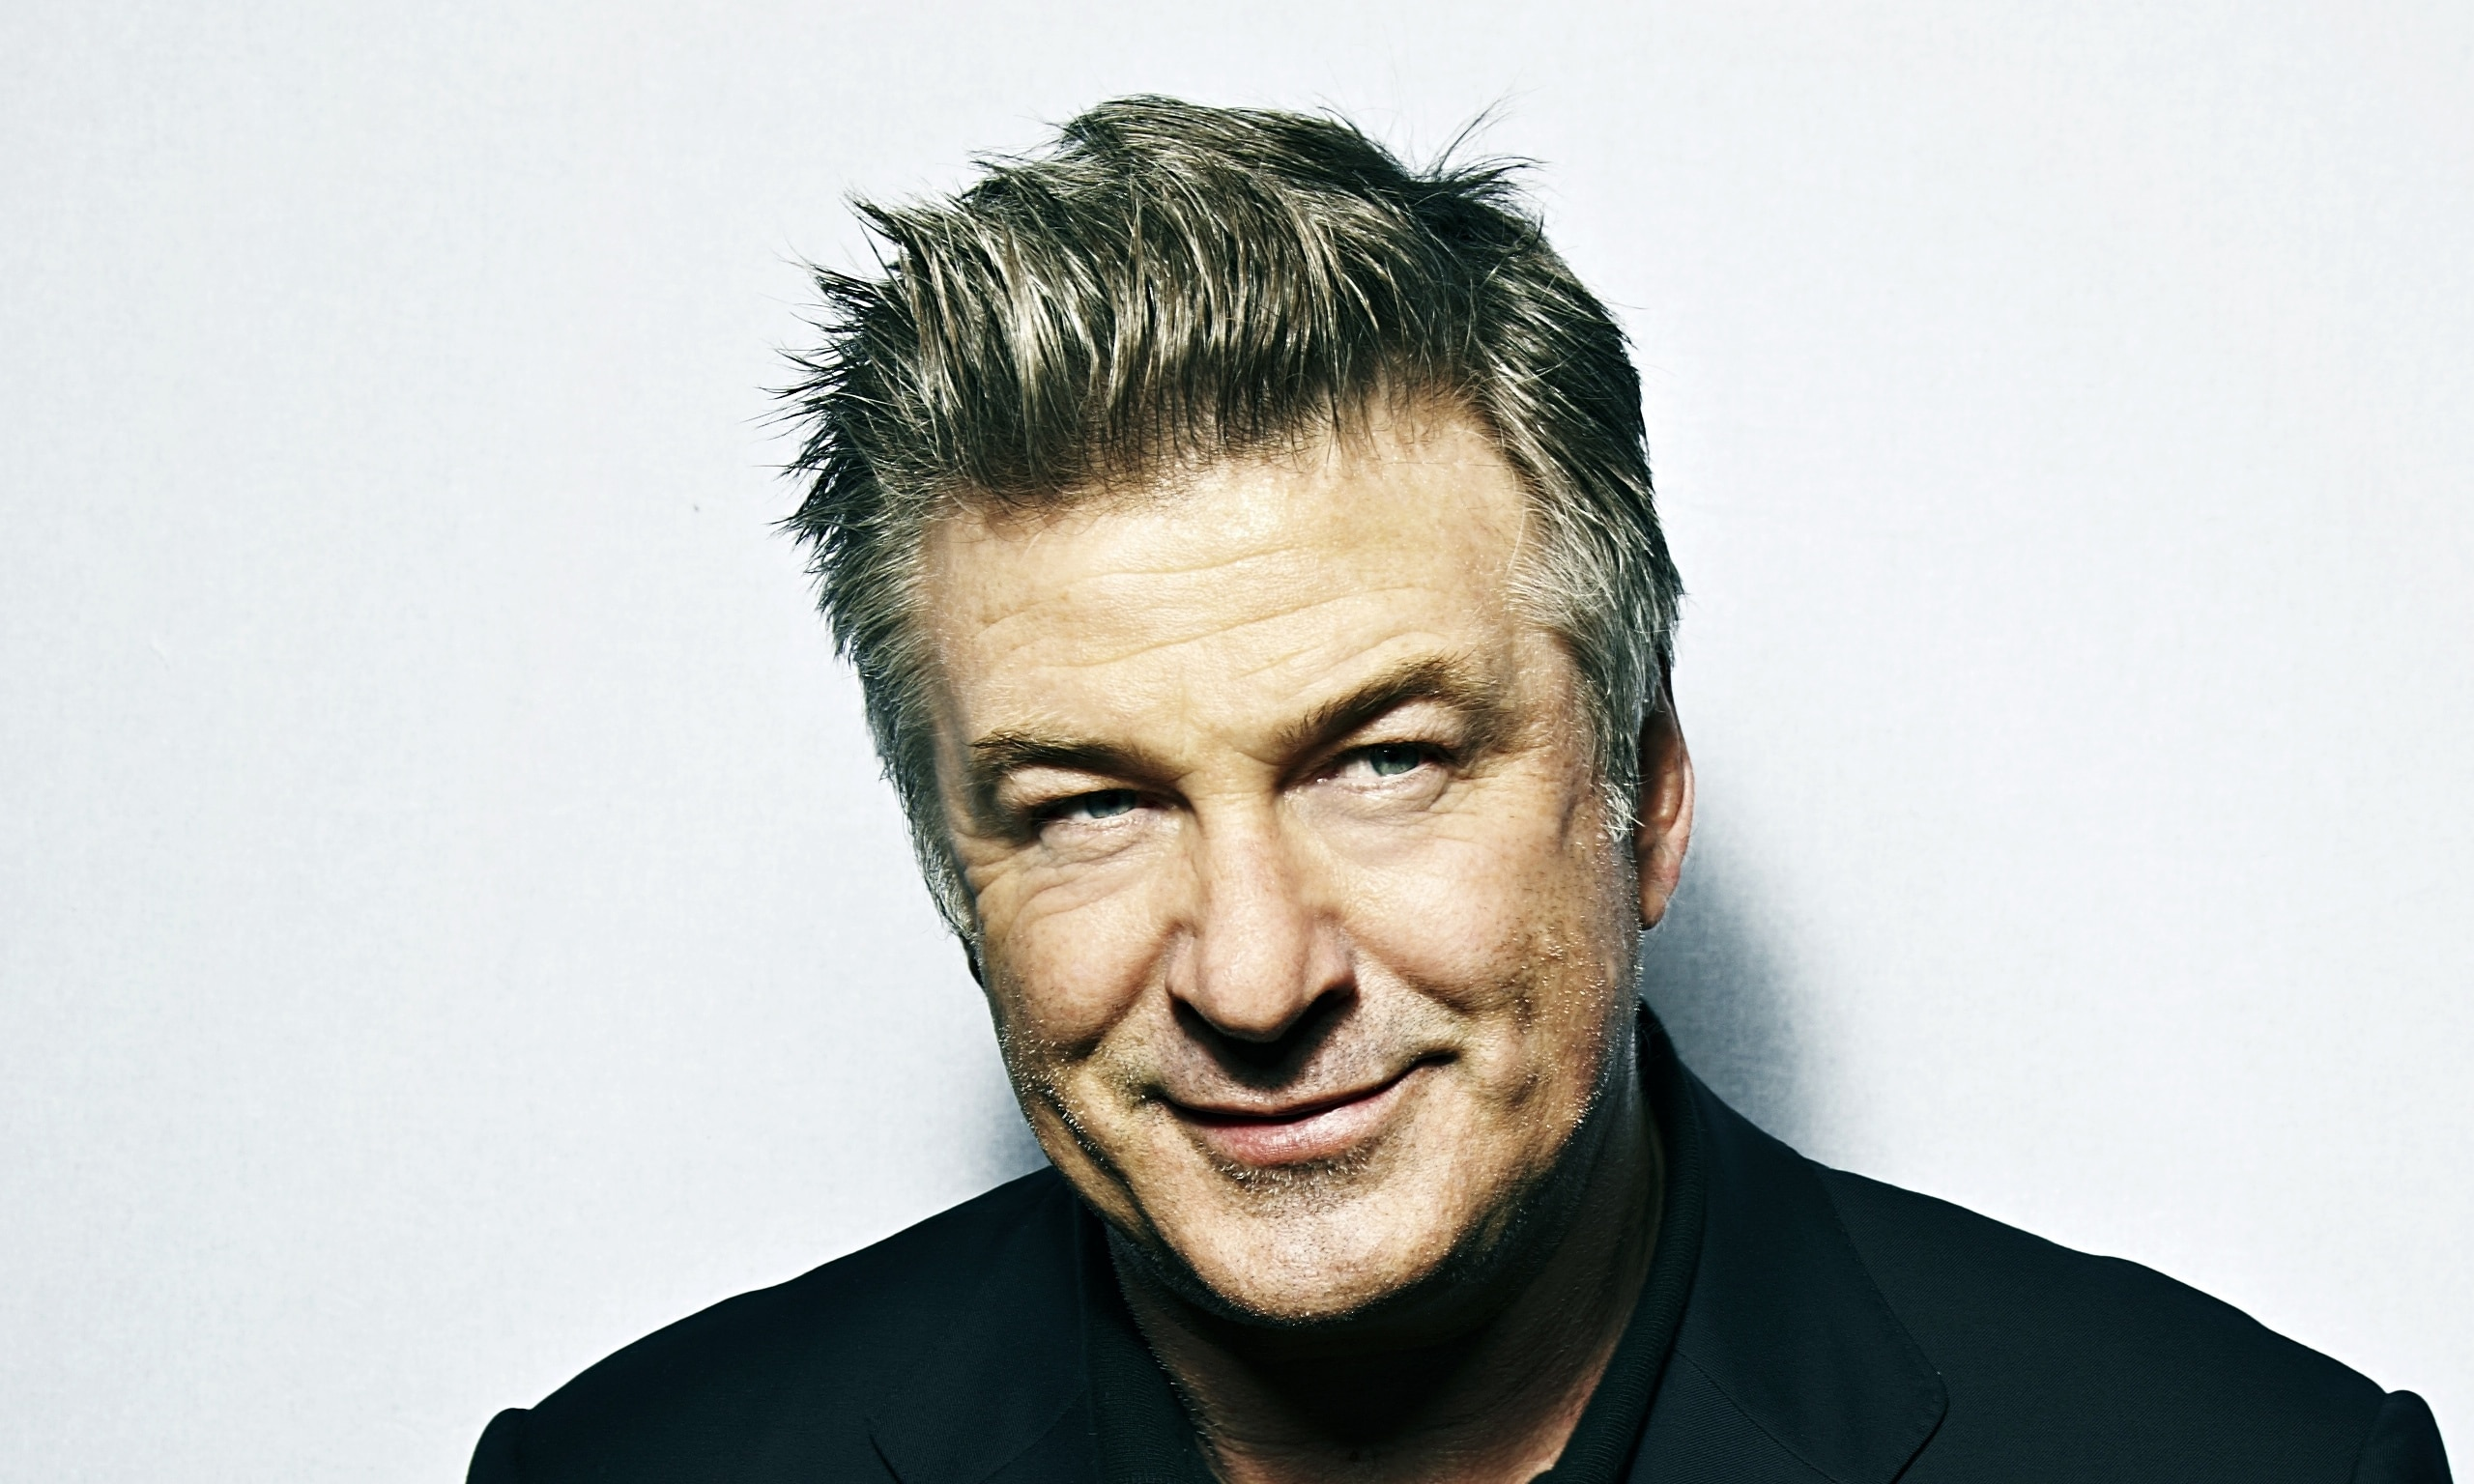 Alec Baldwin Actor The Departed Ravenhaired suavely handsome and prolific actor Alec Baldwin is the oldest and bestknown of the four Baldwin brothers in the